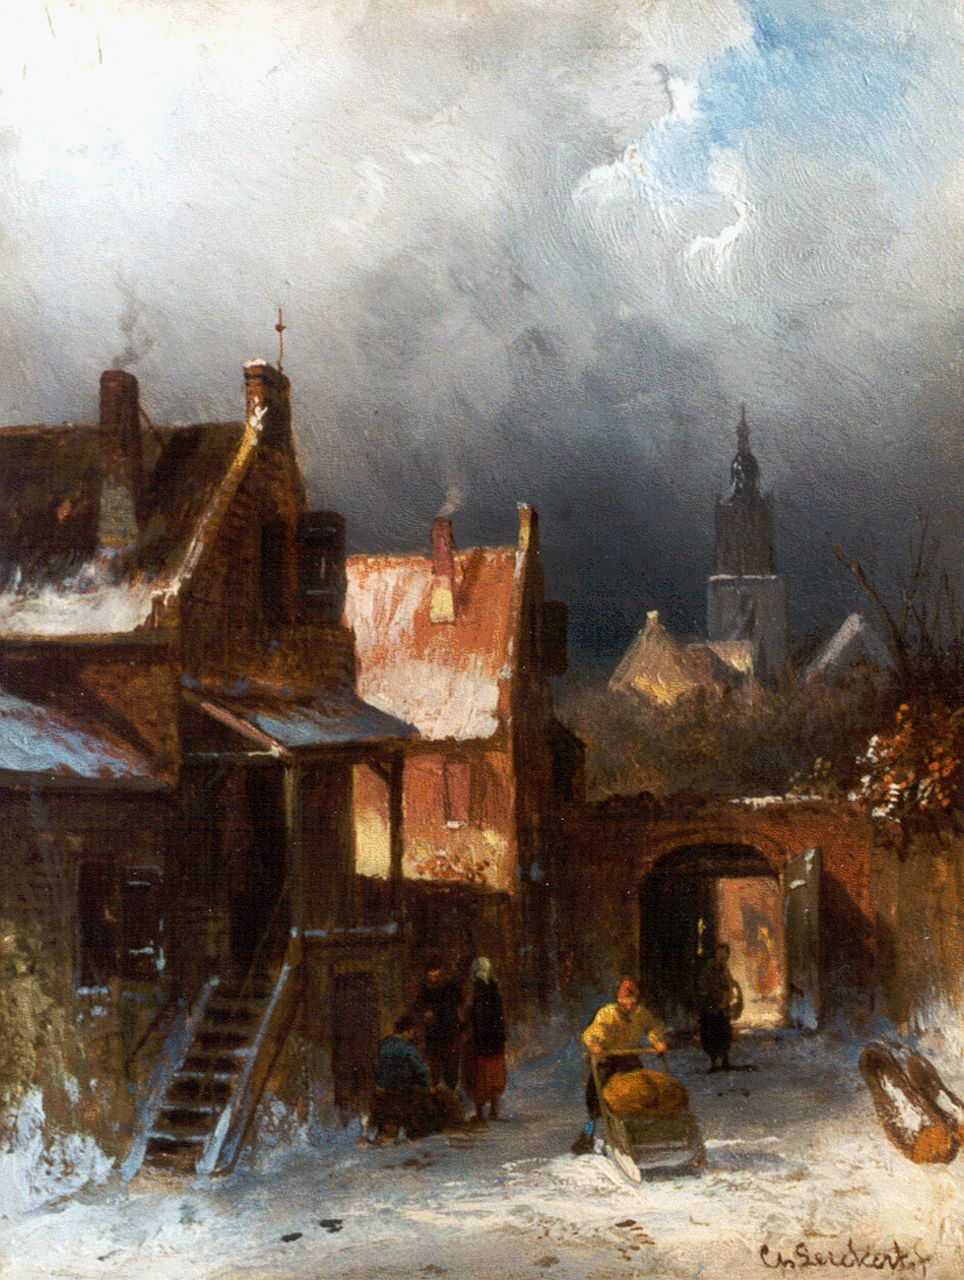 Leickert C.H.J.  | 'Charles' Henri Joseph Leickert, A snow-covered town, oil on panel 20.6 x 15.7 cm, signed l.r.